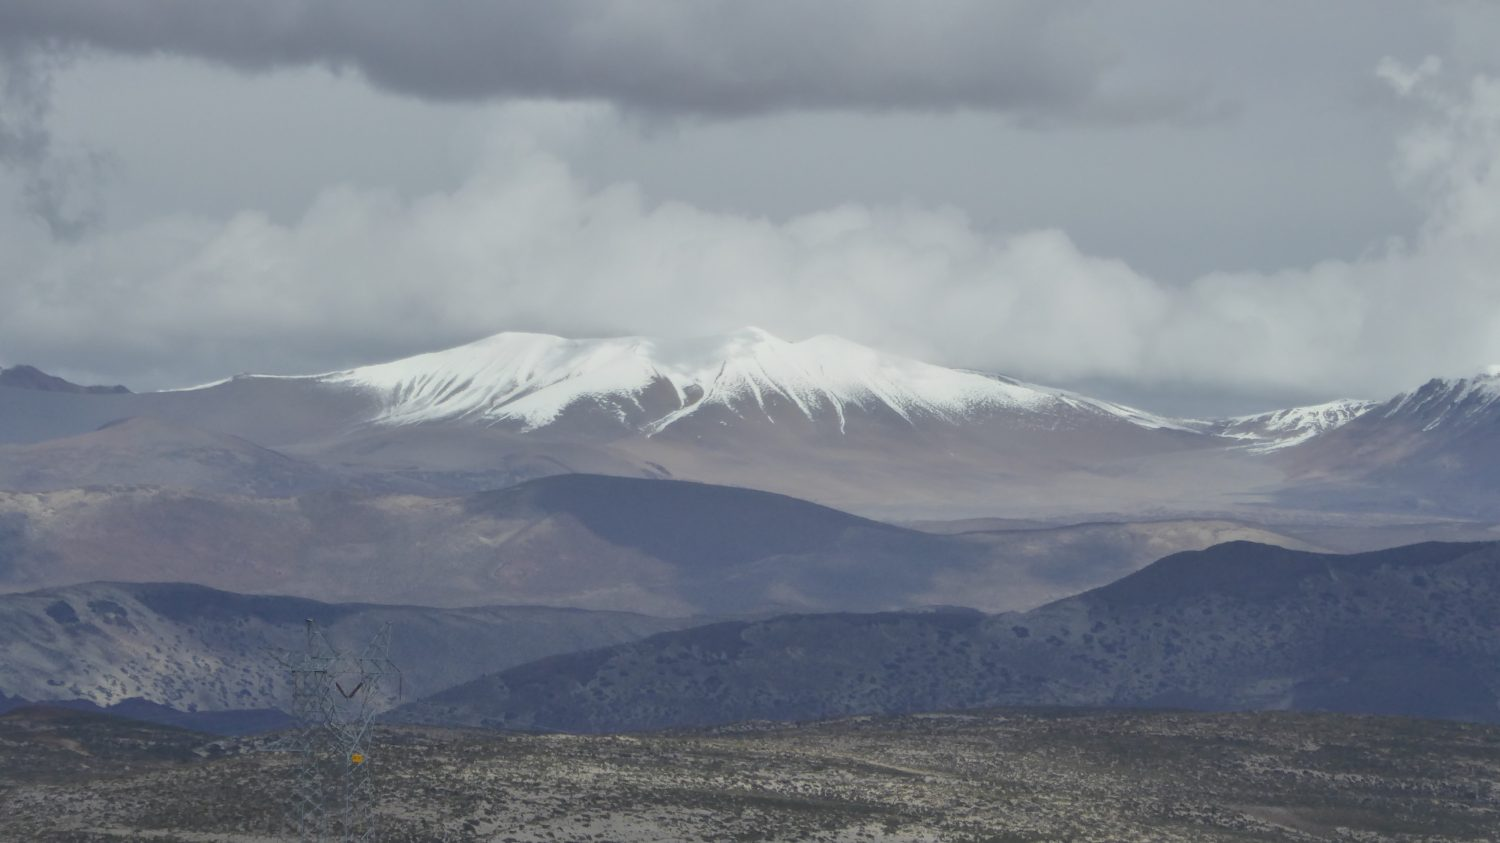 ... and snowcapped mountains